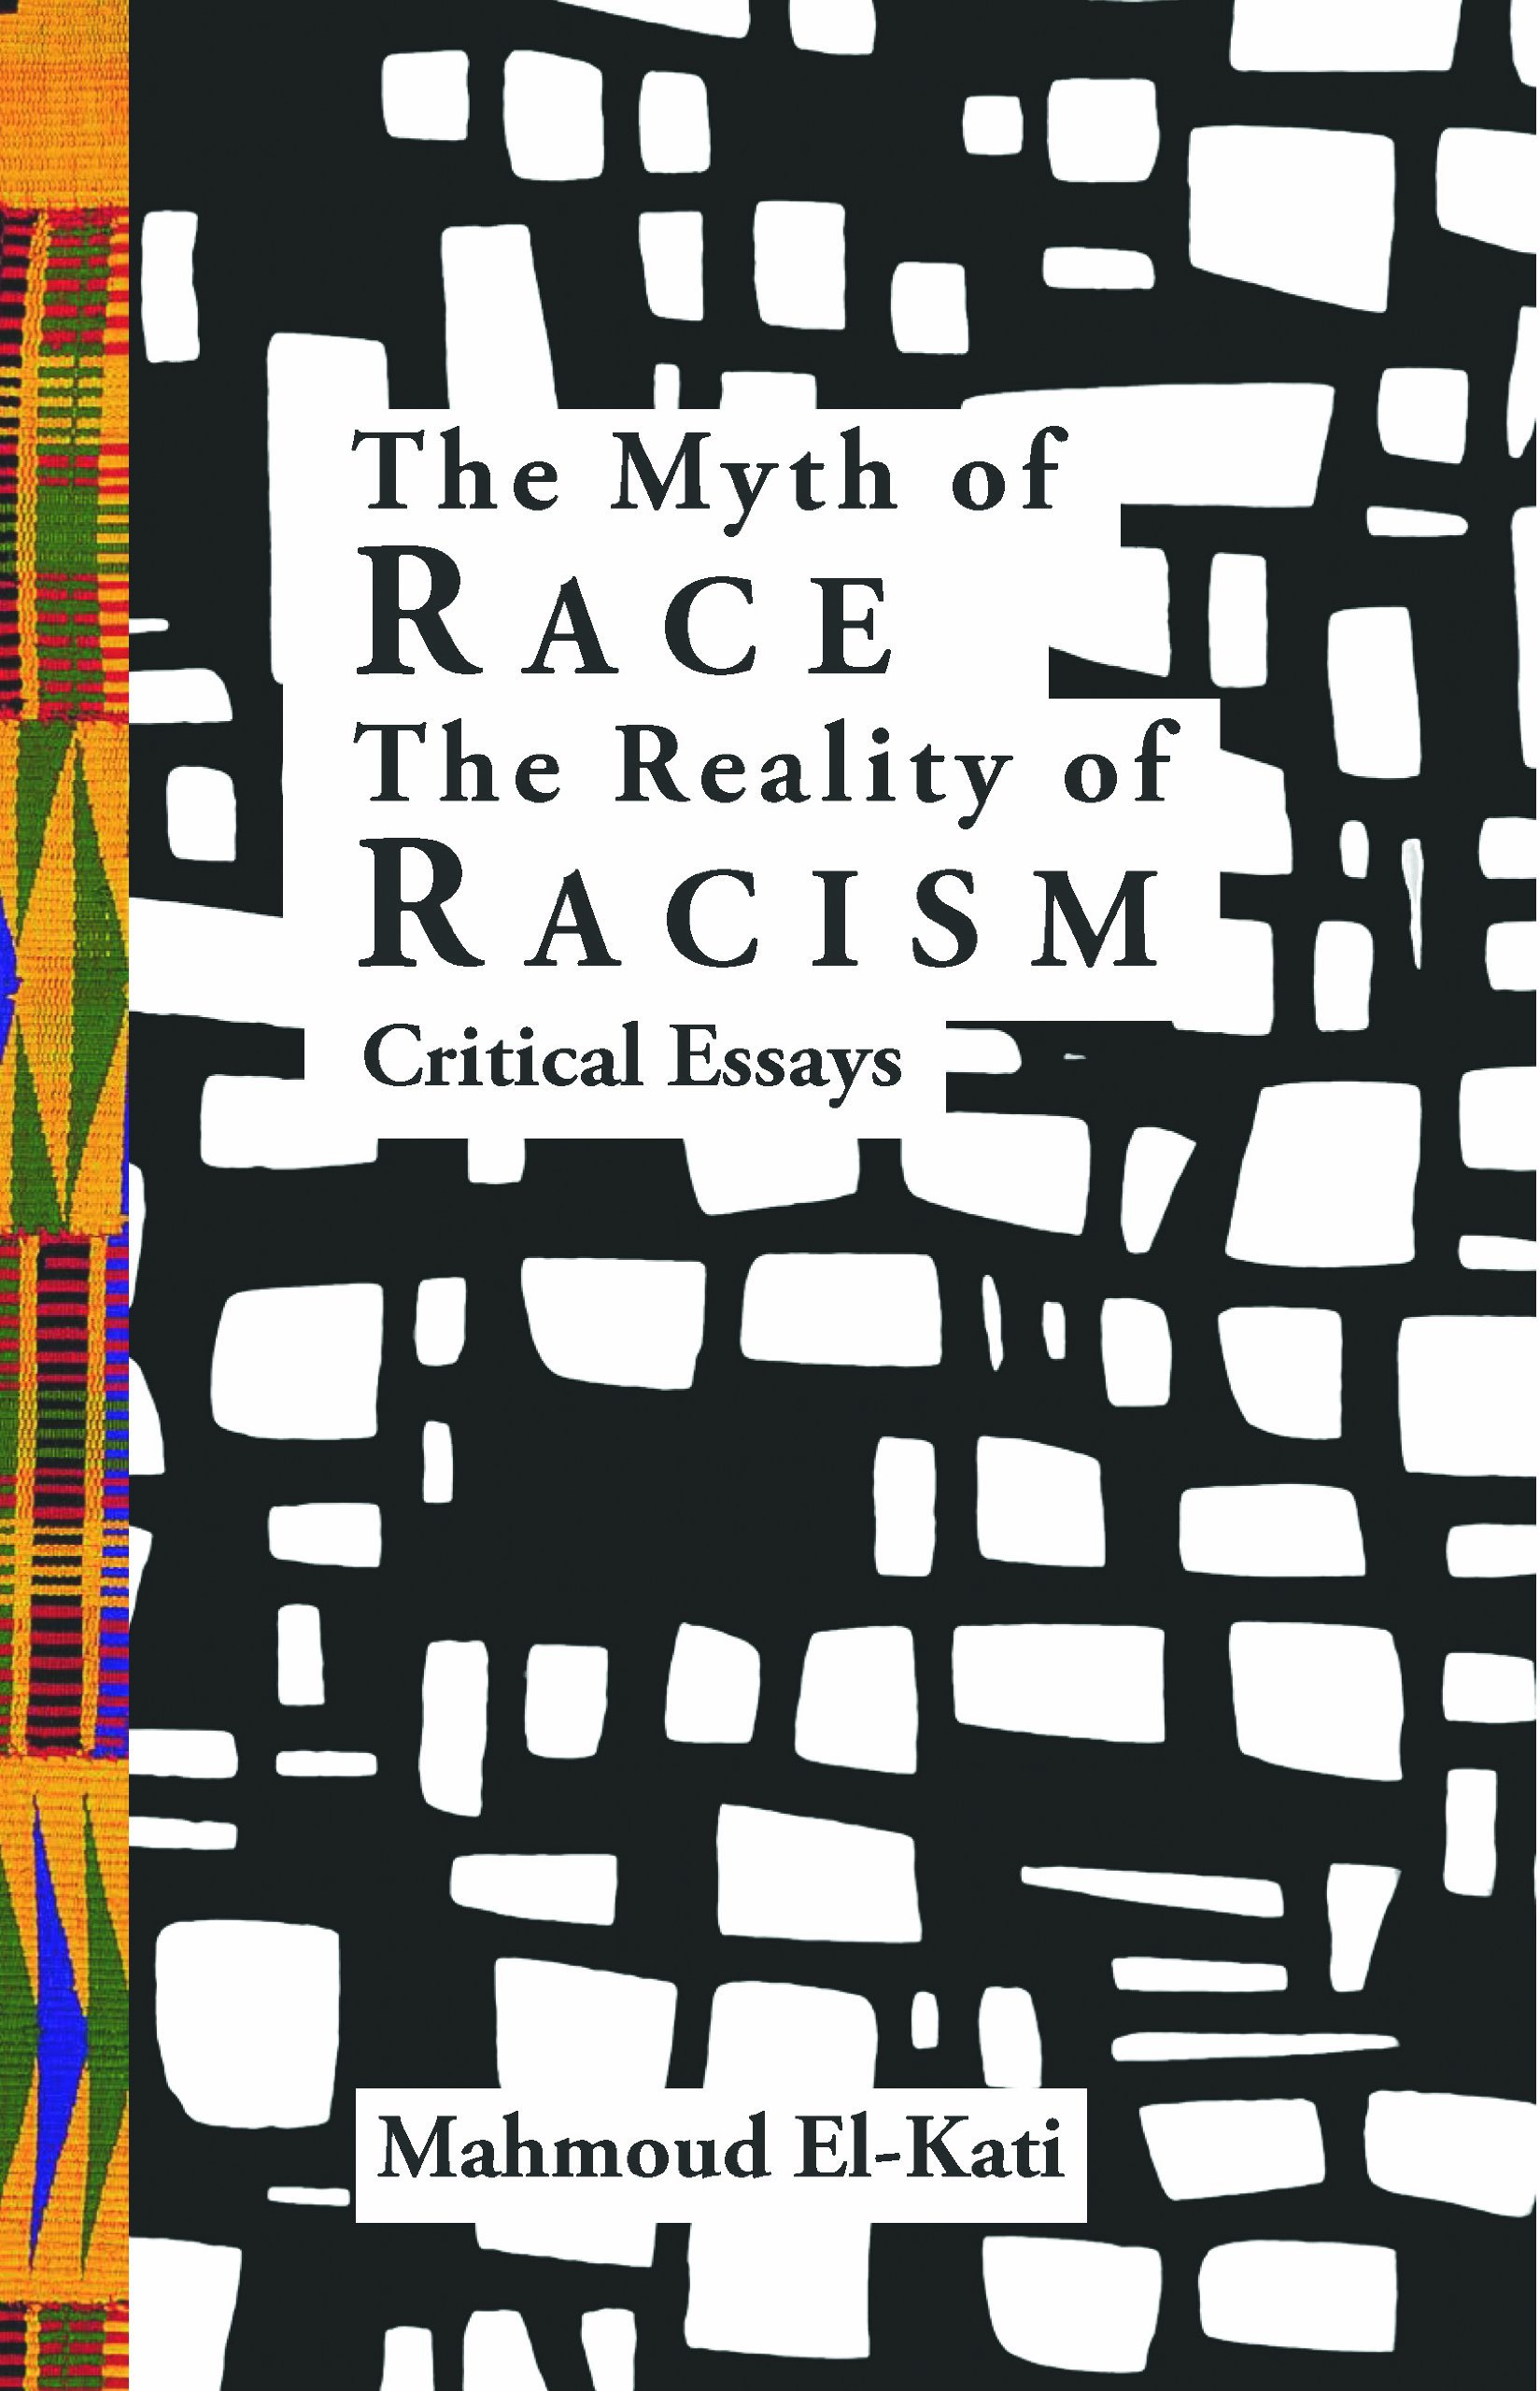 myth essays christ and mithras a chestertonian defense of  the myth of race the reality of racism critical essays mahmoud the myth of race the